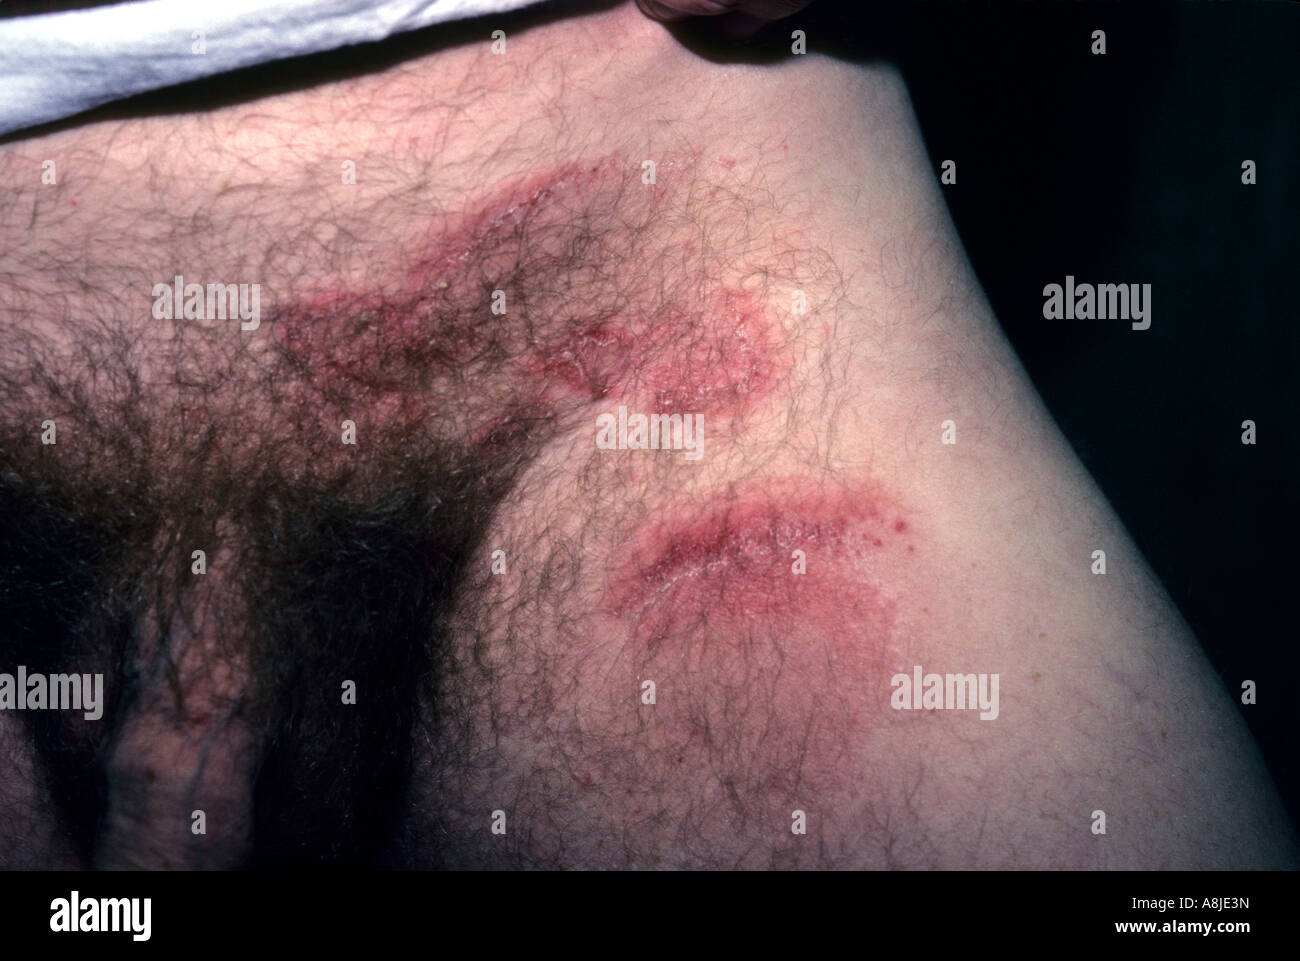 Male patient with jock-itch. Also known as ring worm in the groin area. - Stock Image